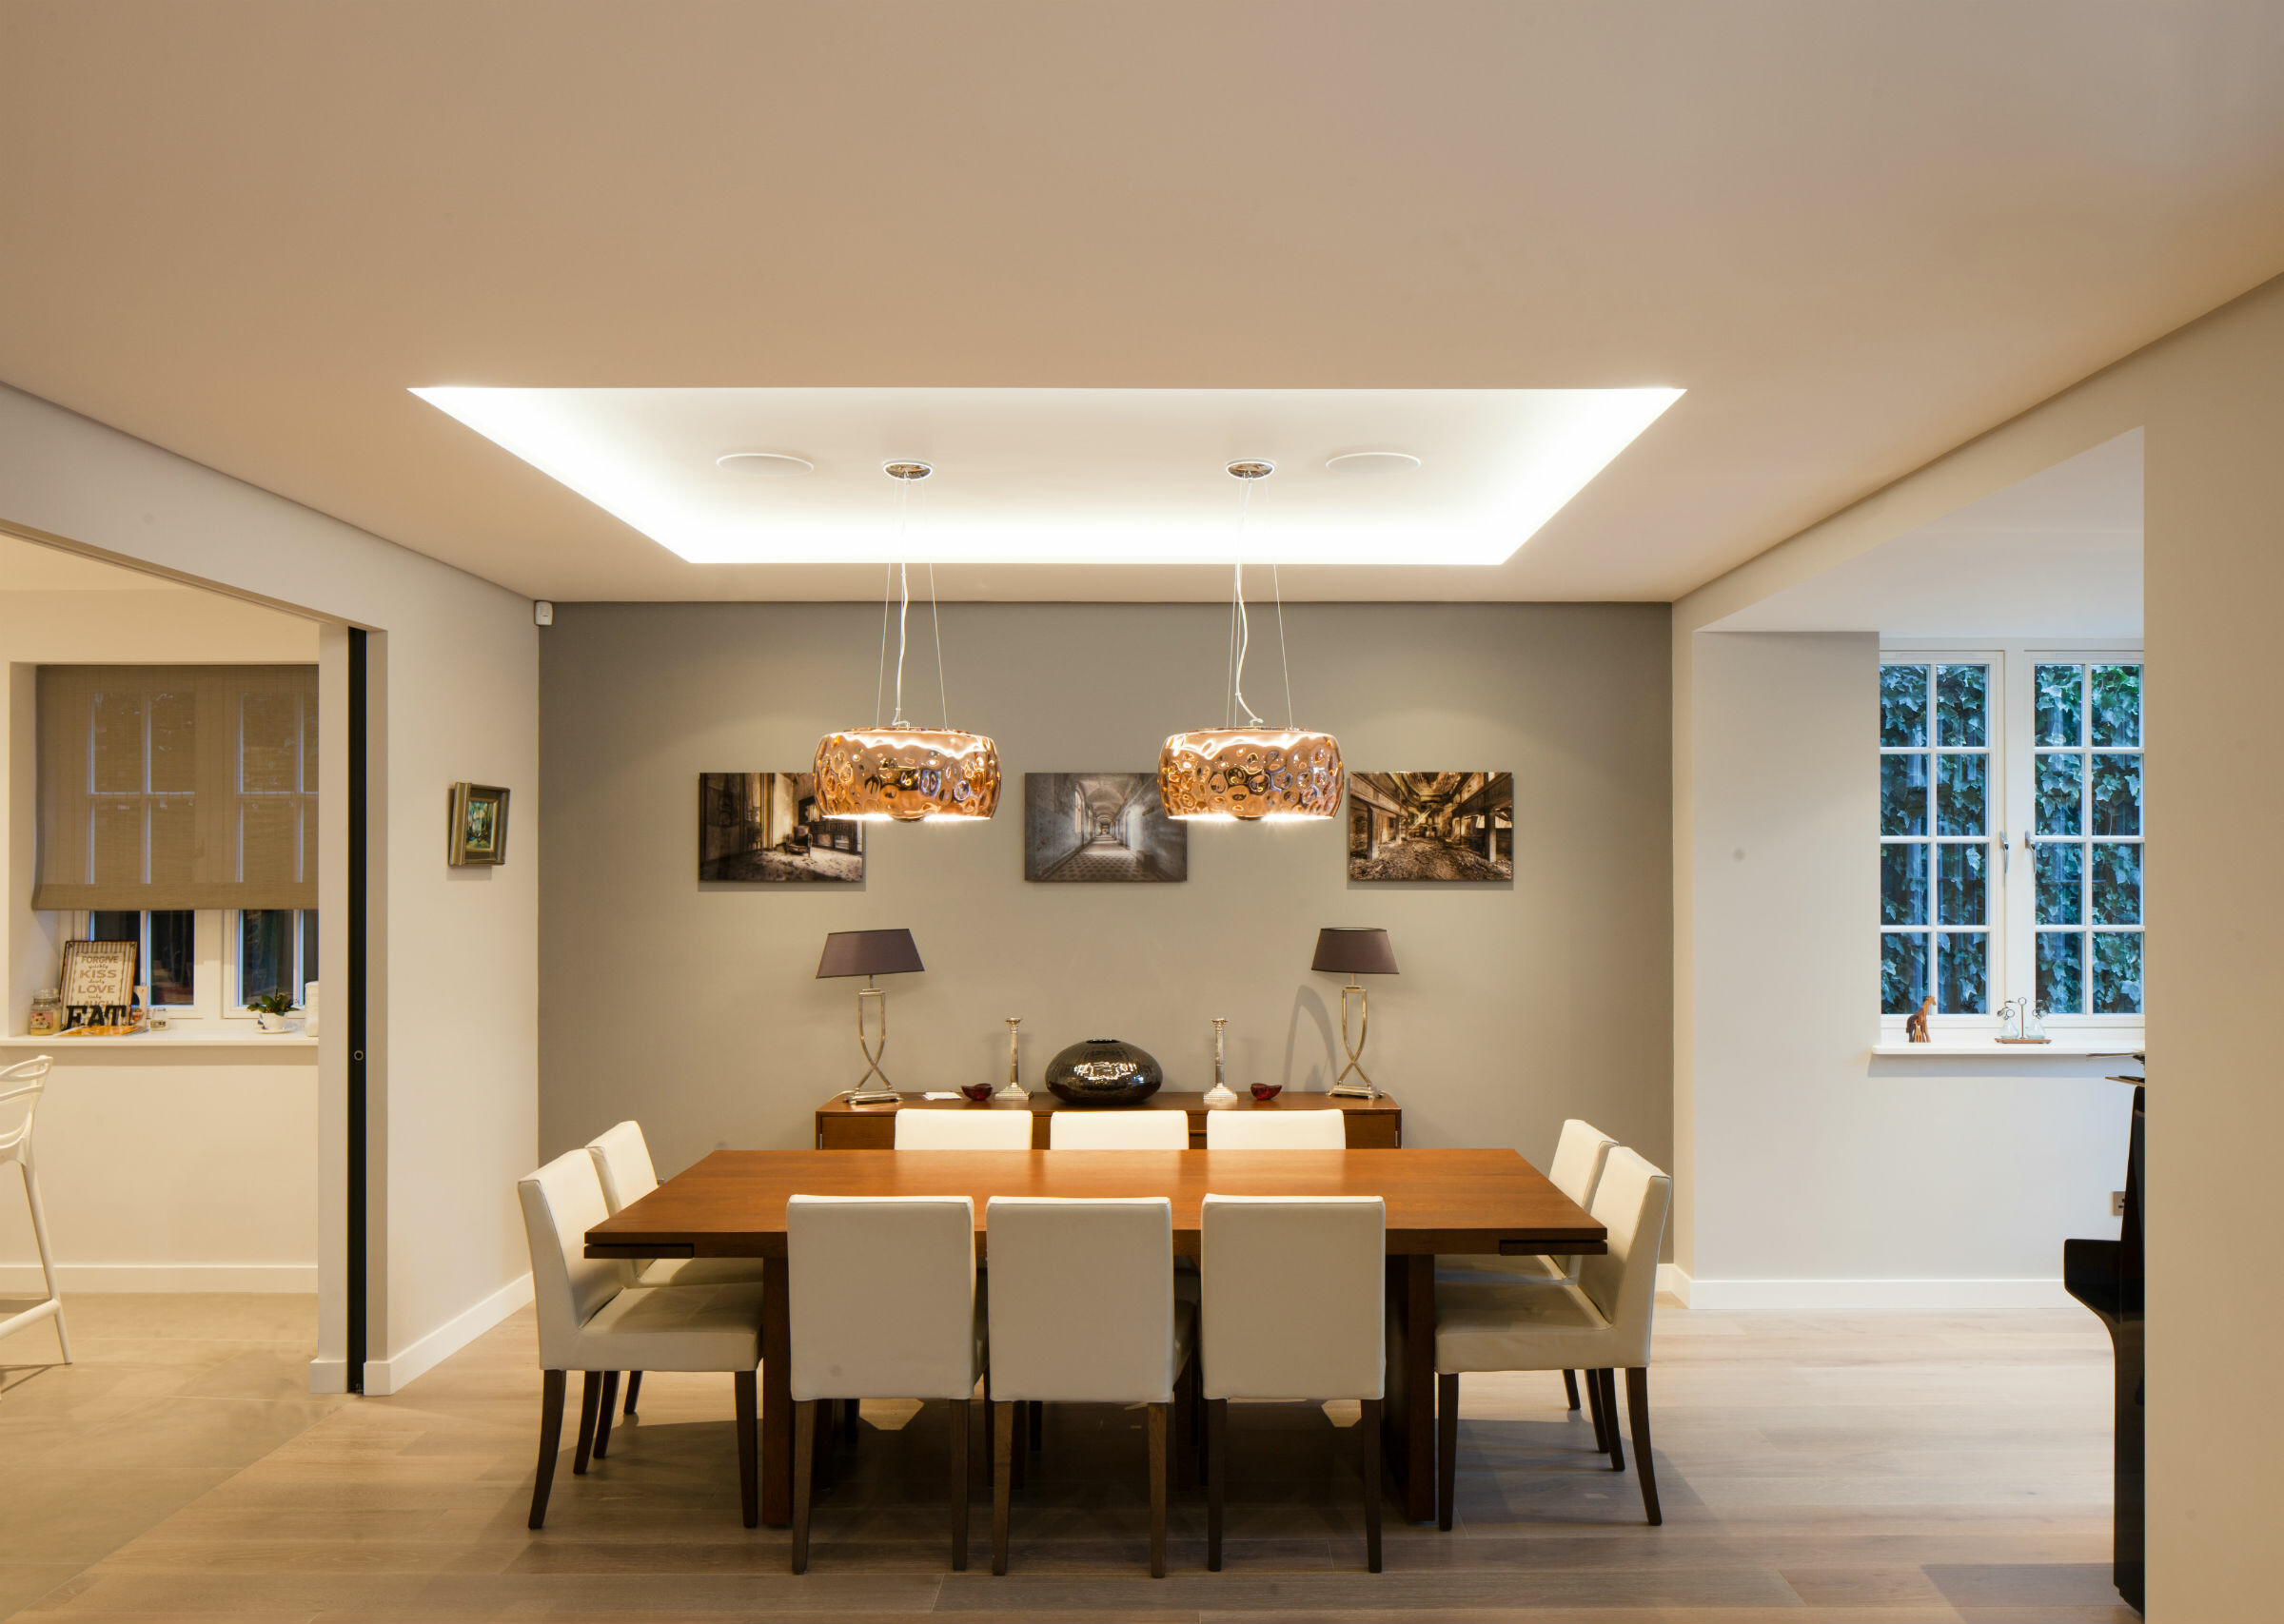 Dining room with large table with pendant lights above